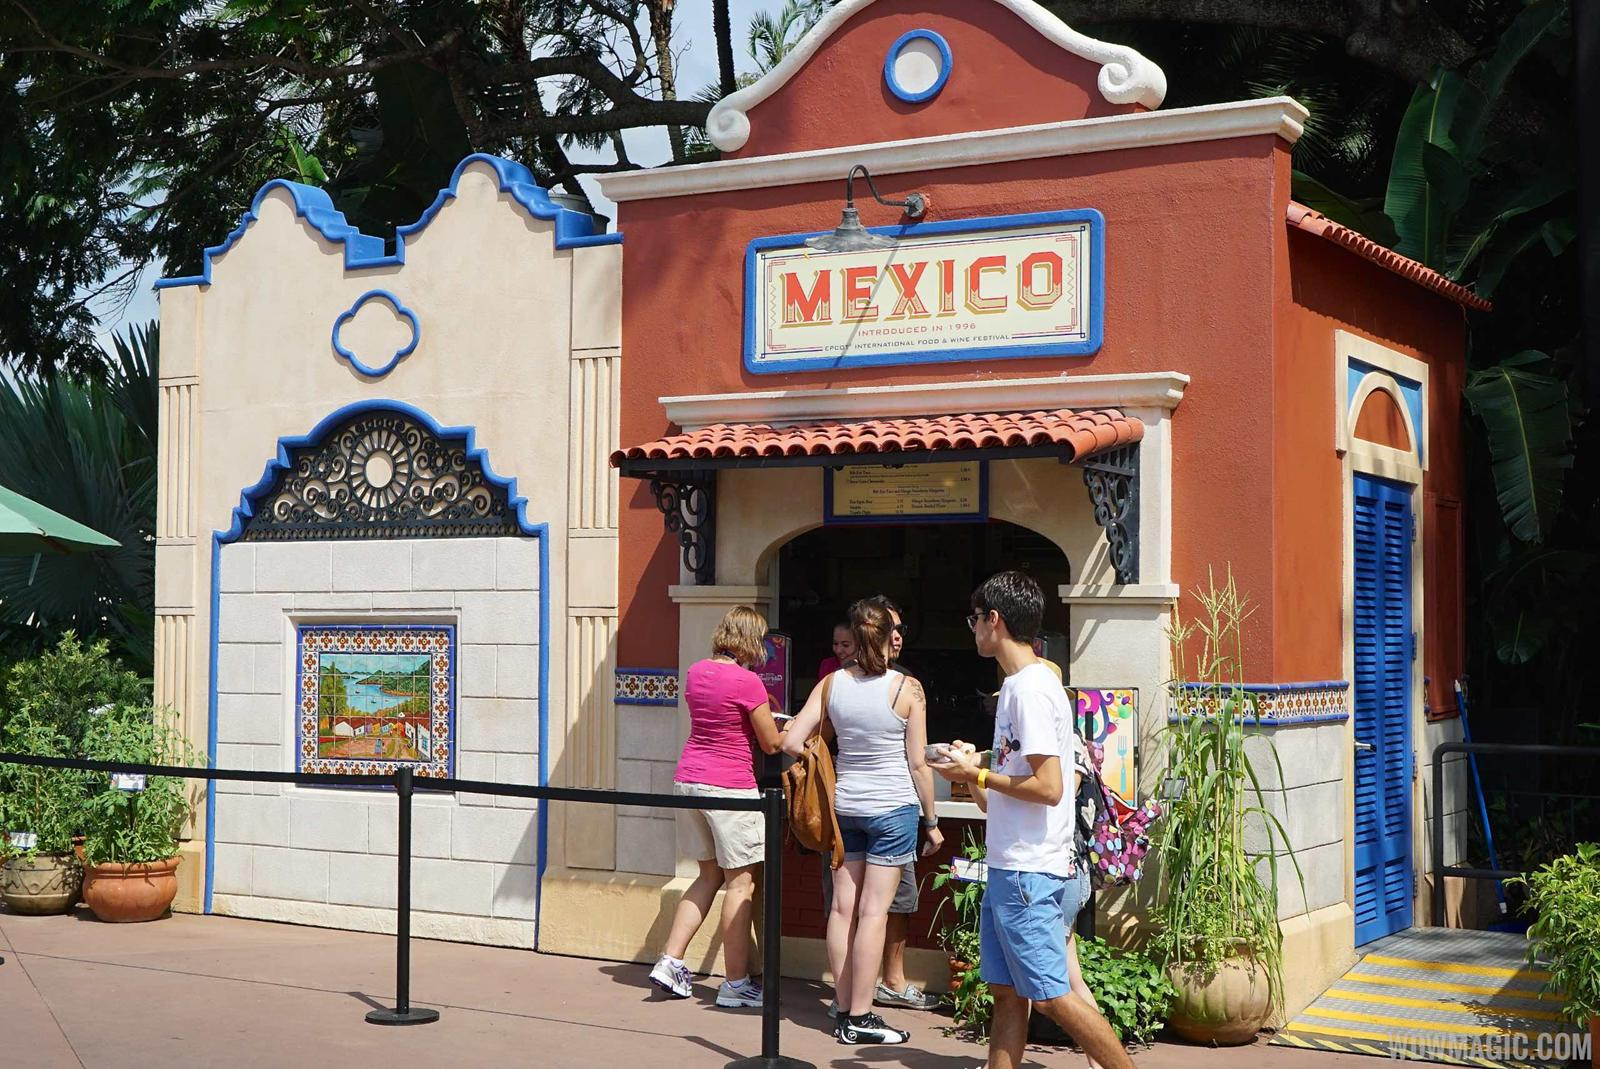 Mexico Food and Wine kiosk